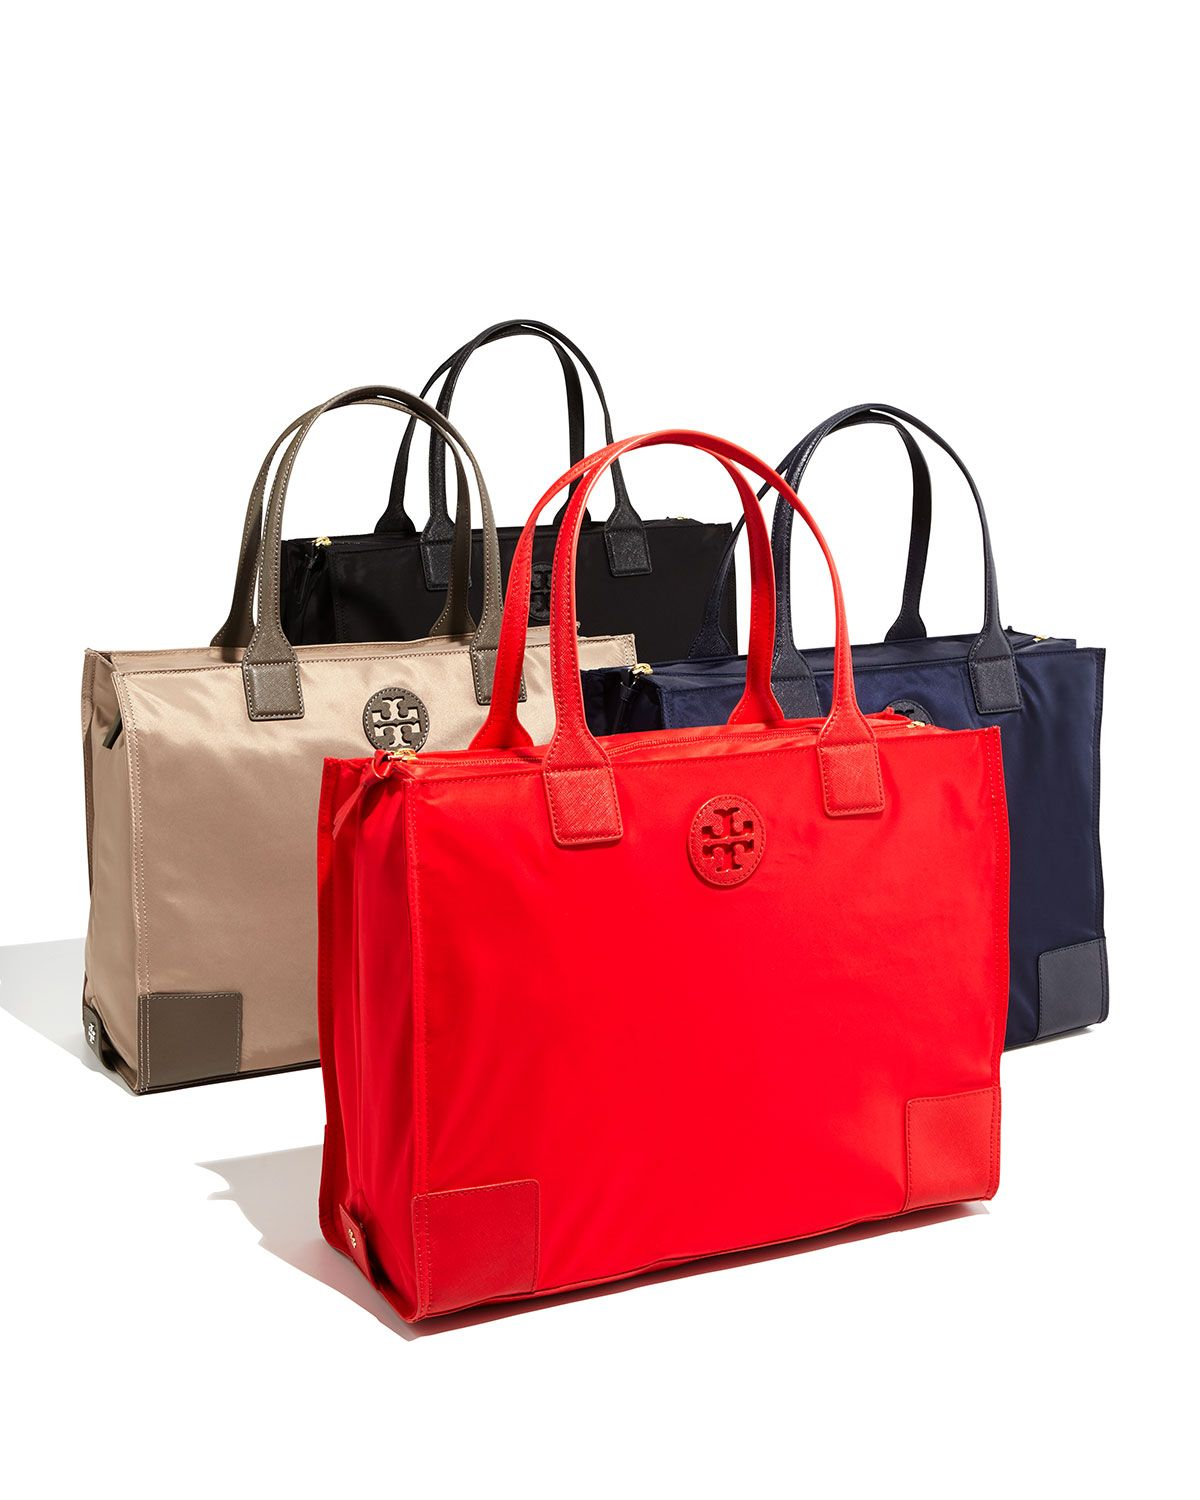 690fcf3f2982 Tory Burch Ella Packable Nylon Tote Bag